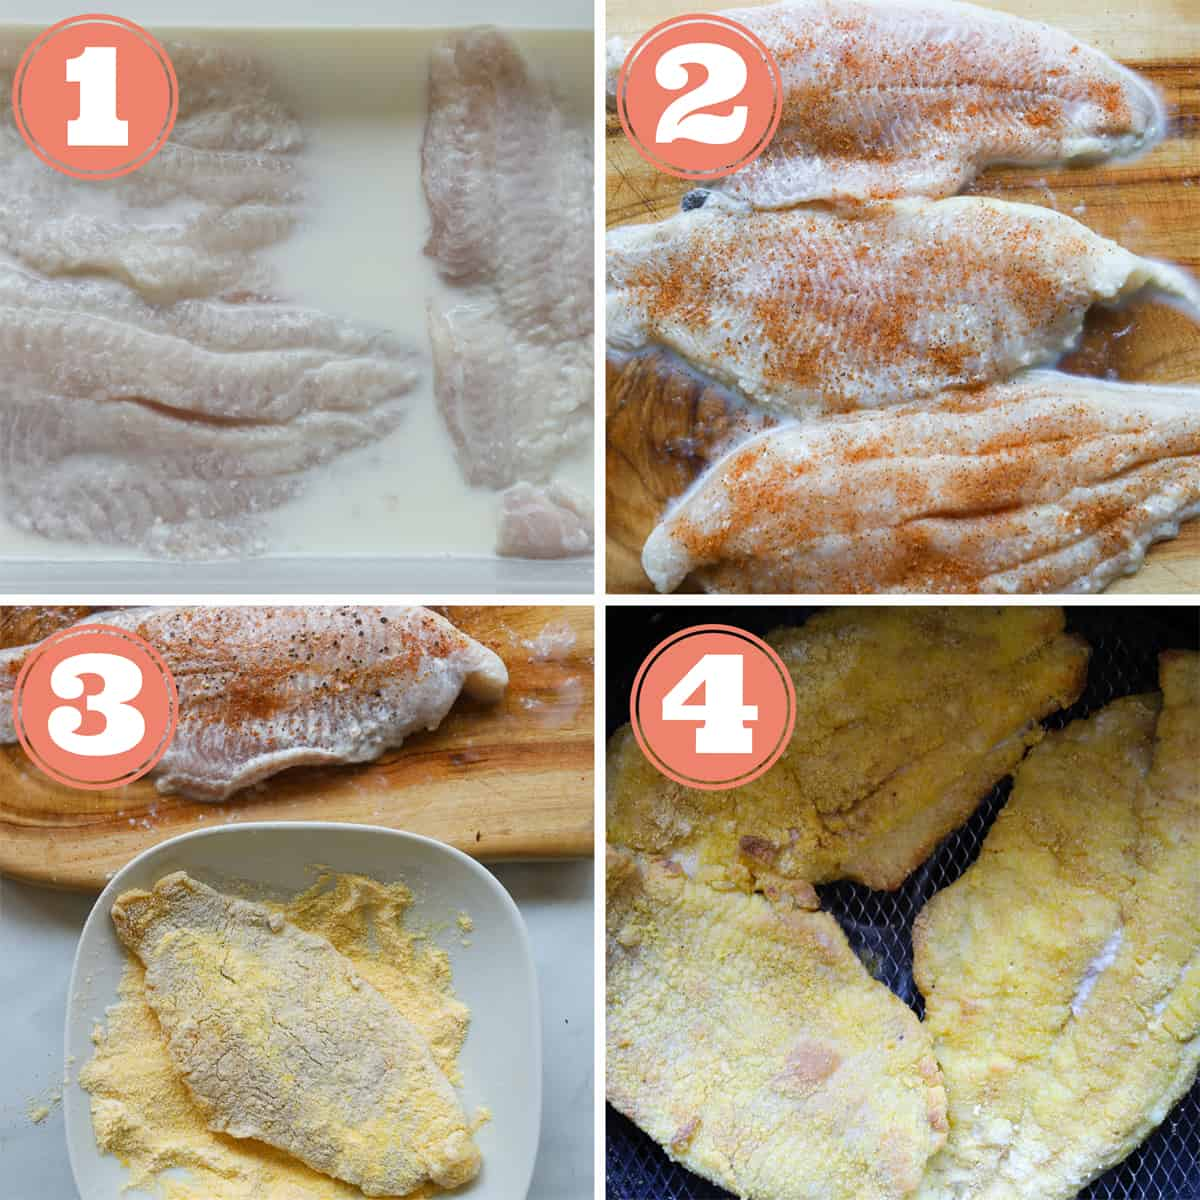 4 grid picture. first grid fish in milk. Second grid fish fillets seasoned. Third grid, fish fillet in cornmeal. Fourth grid, fish fillets in basket.